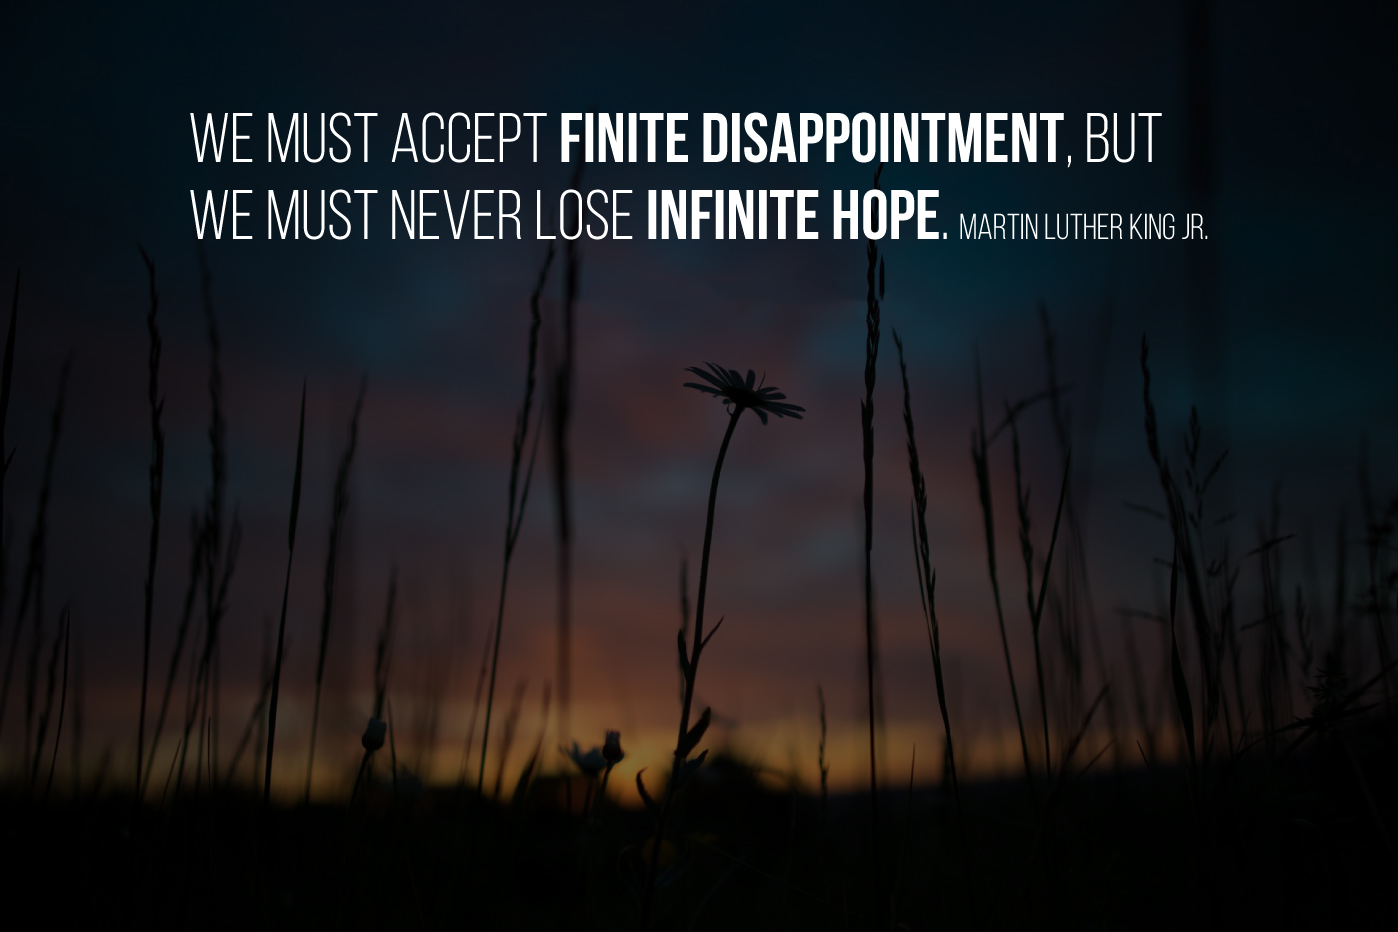 We must accept finite disappointment, but we must never lose infinite hope. Martin Luther King Jr.